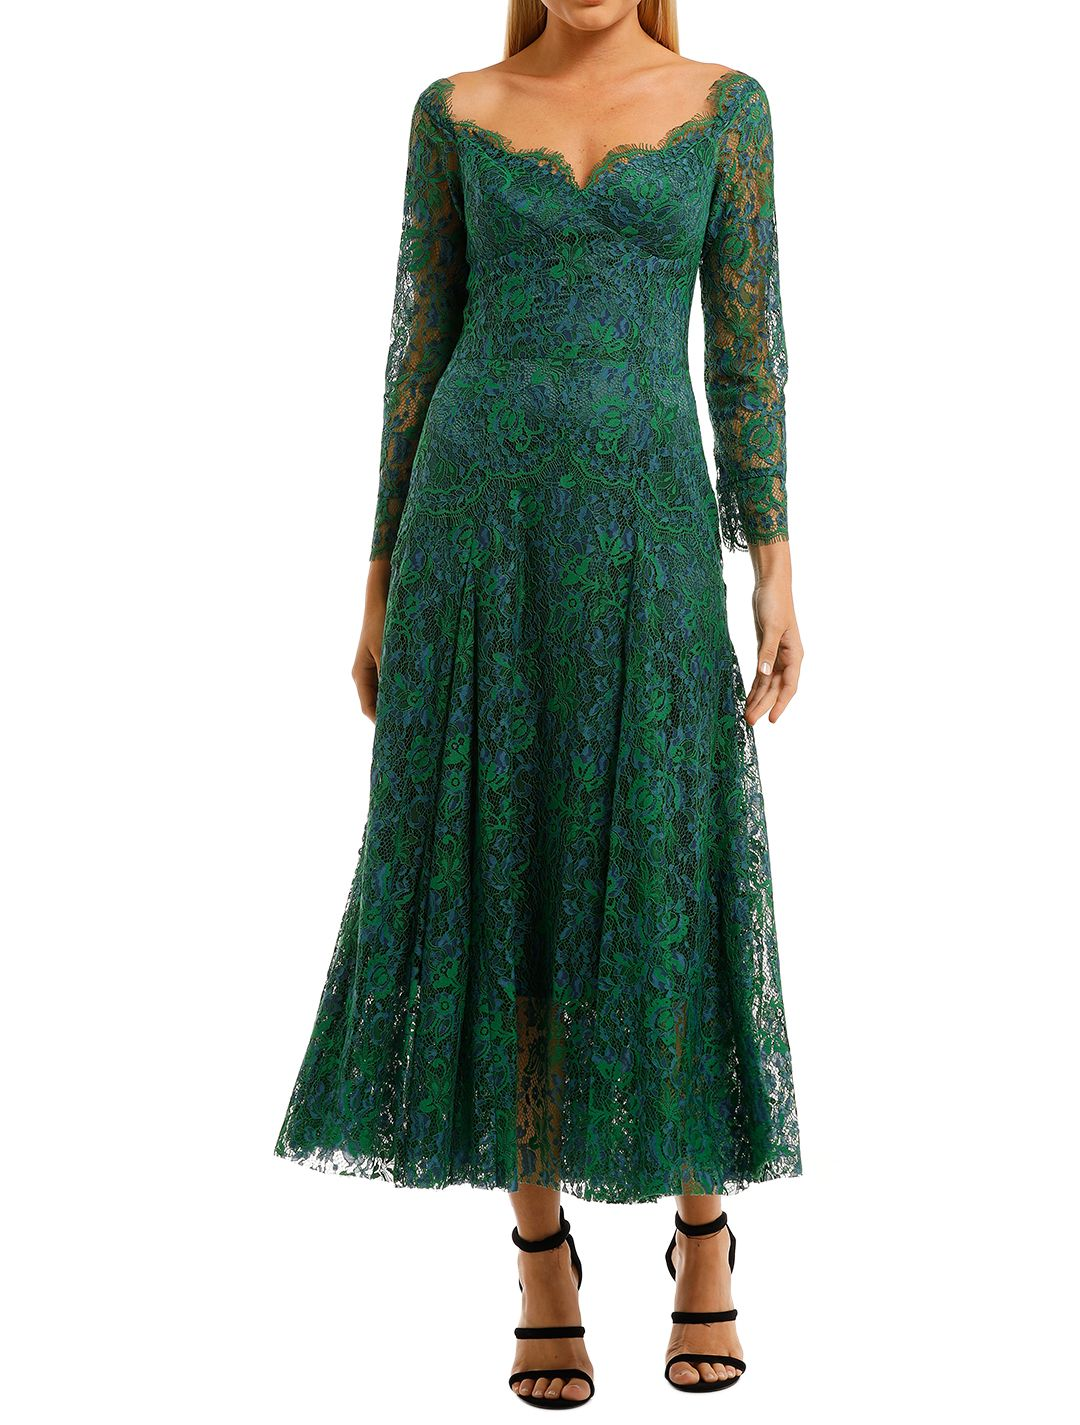 Moss-and-Spy-Kathleen-Dress-Emerad-Front